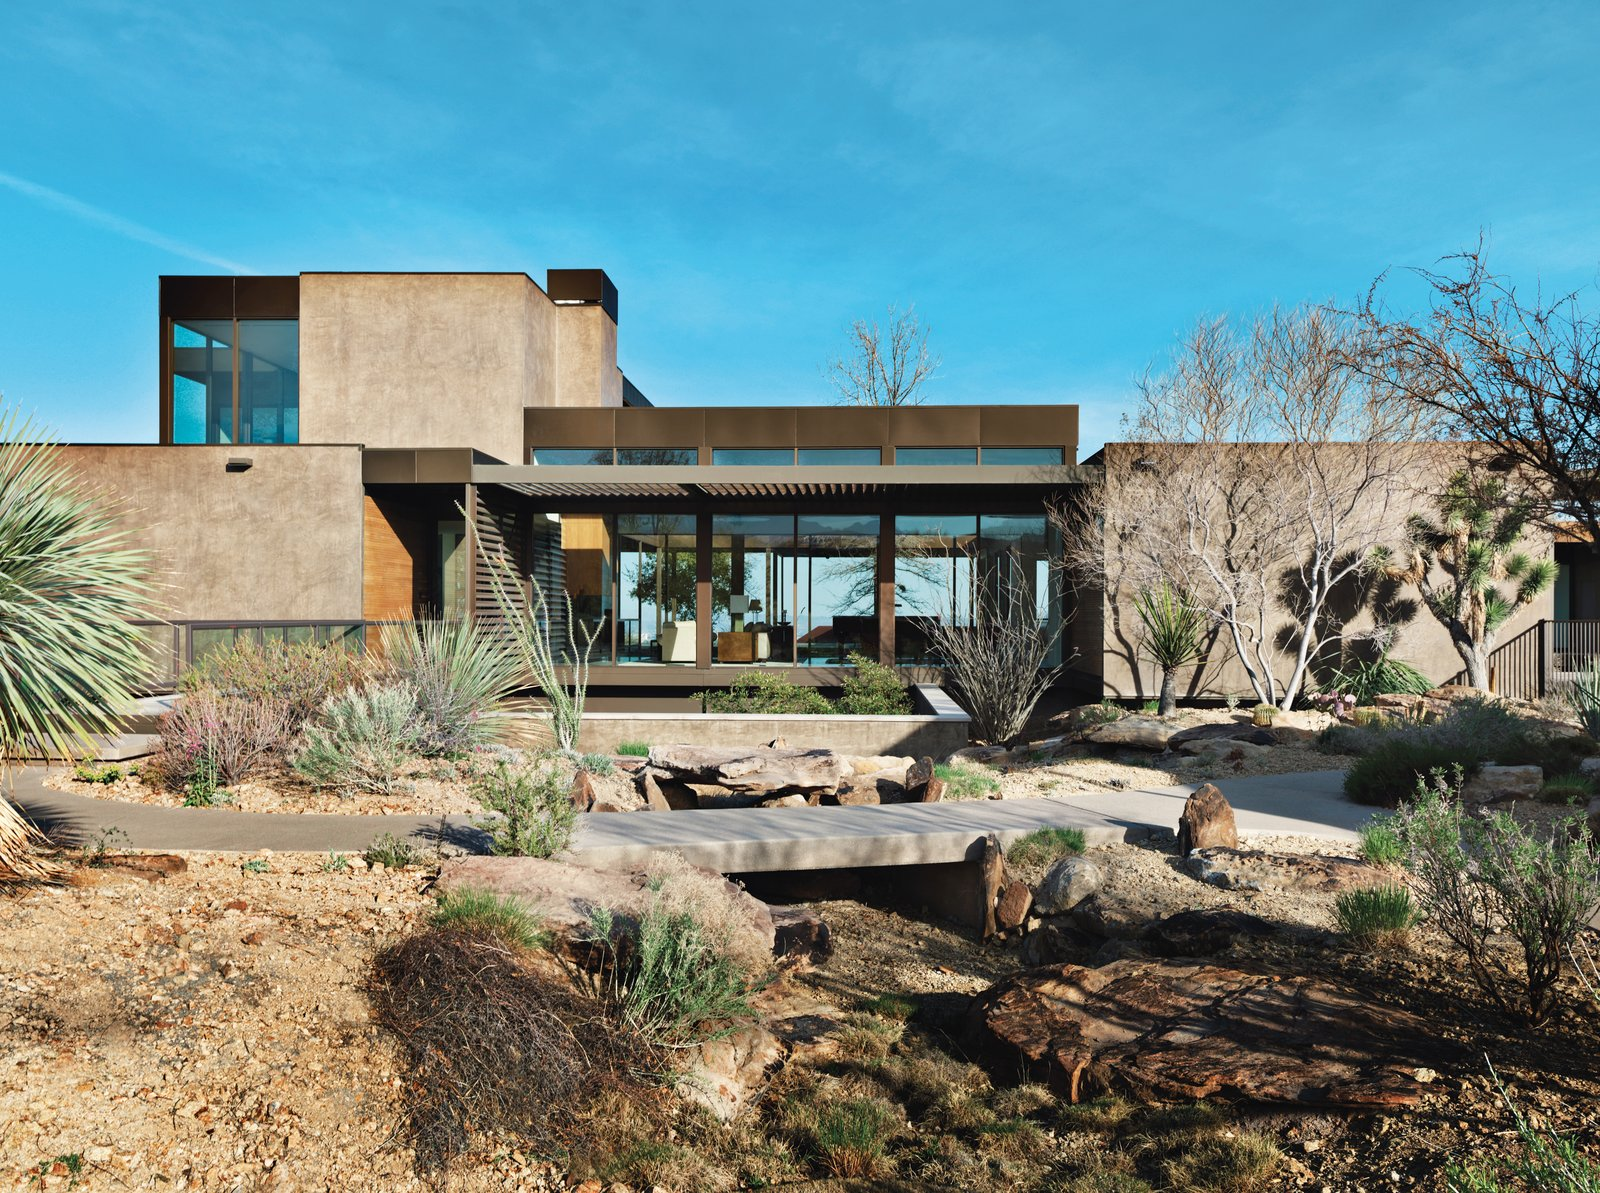 Sage Design Studios transformed the developer-flattened landscape into a picturesque desert setting with naturalistic undulations, meandering trails,and drought-tolerant shrubs.  Exterior Renovation from A Picturesque Desert Prefab